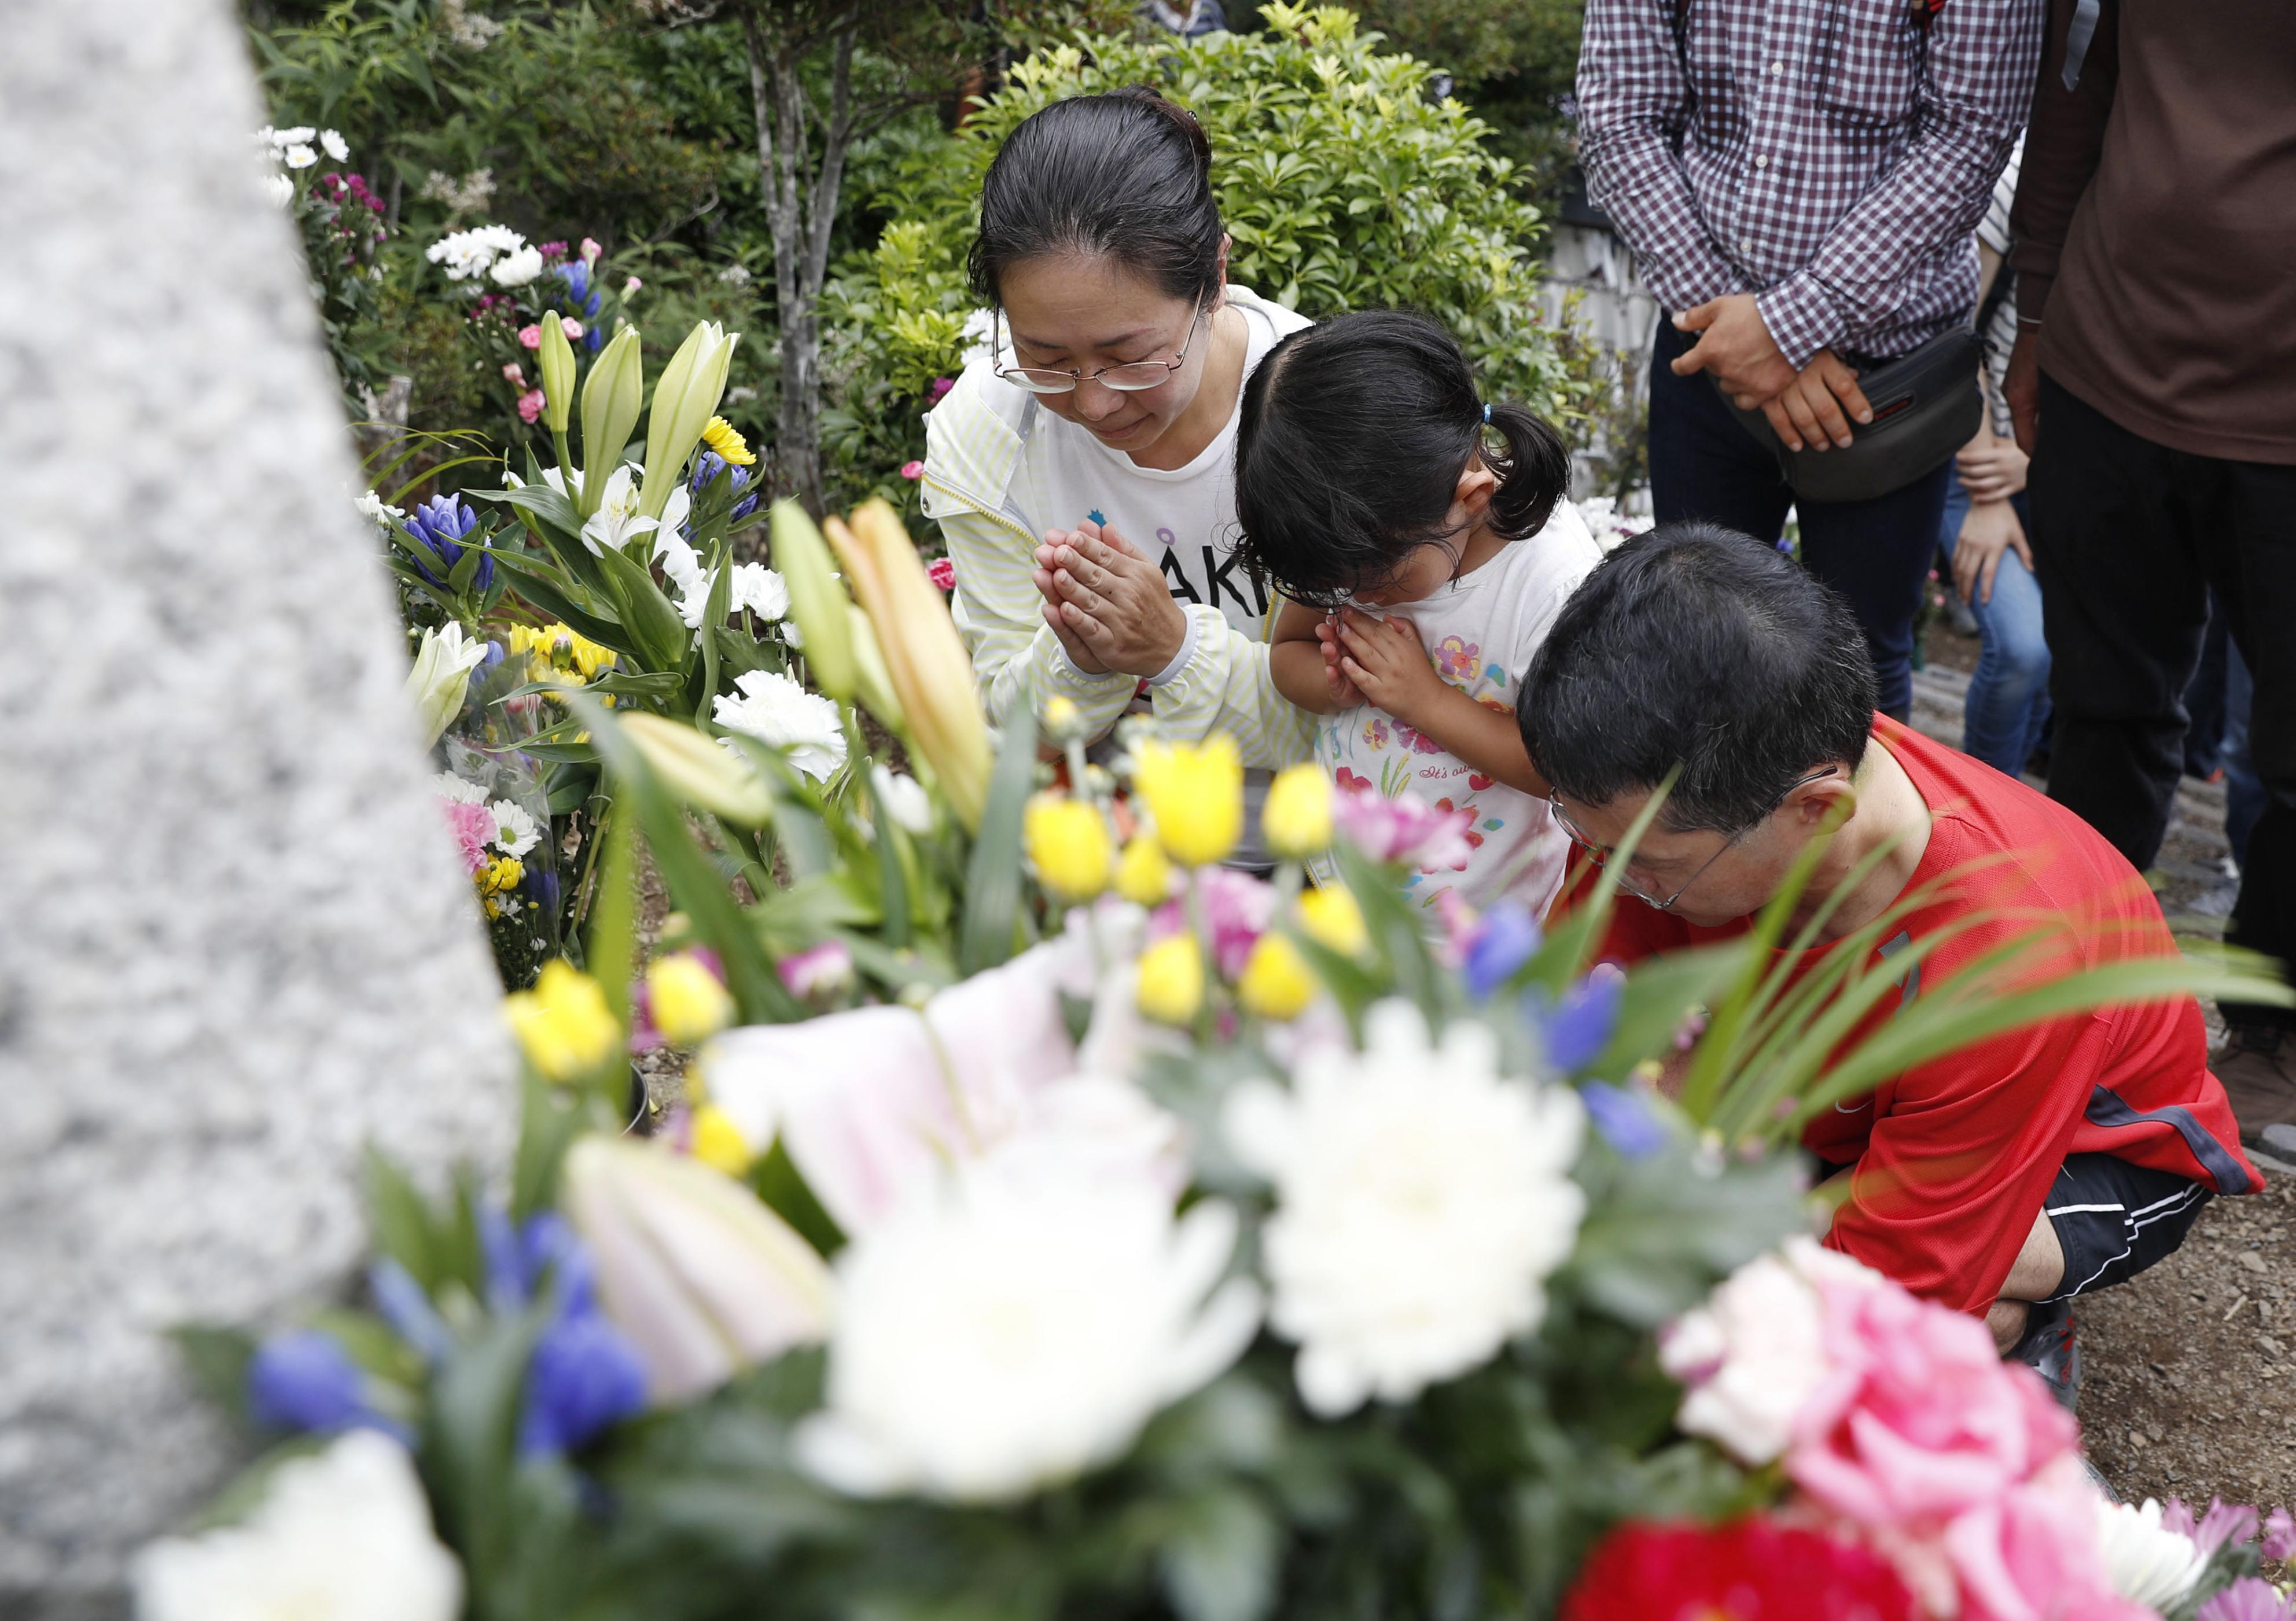 Relatives commemorate victims on JAL jumbo crash anniversary